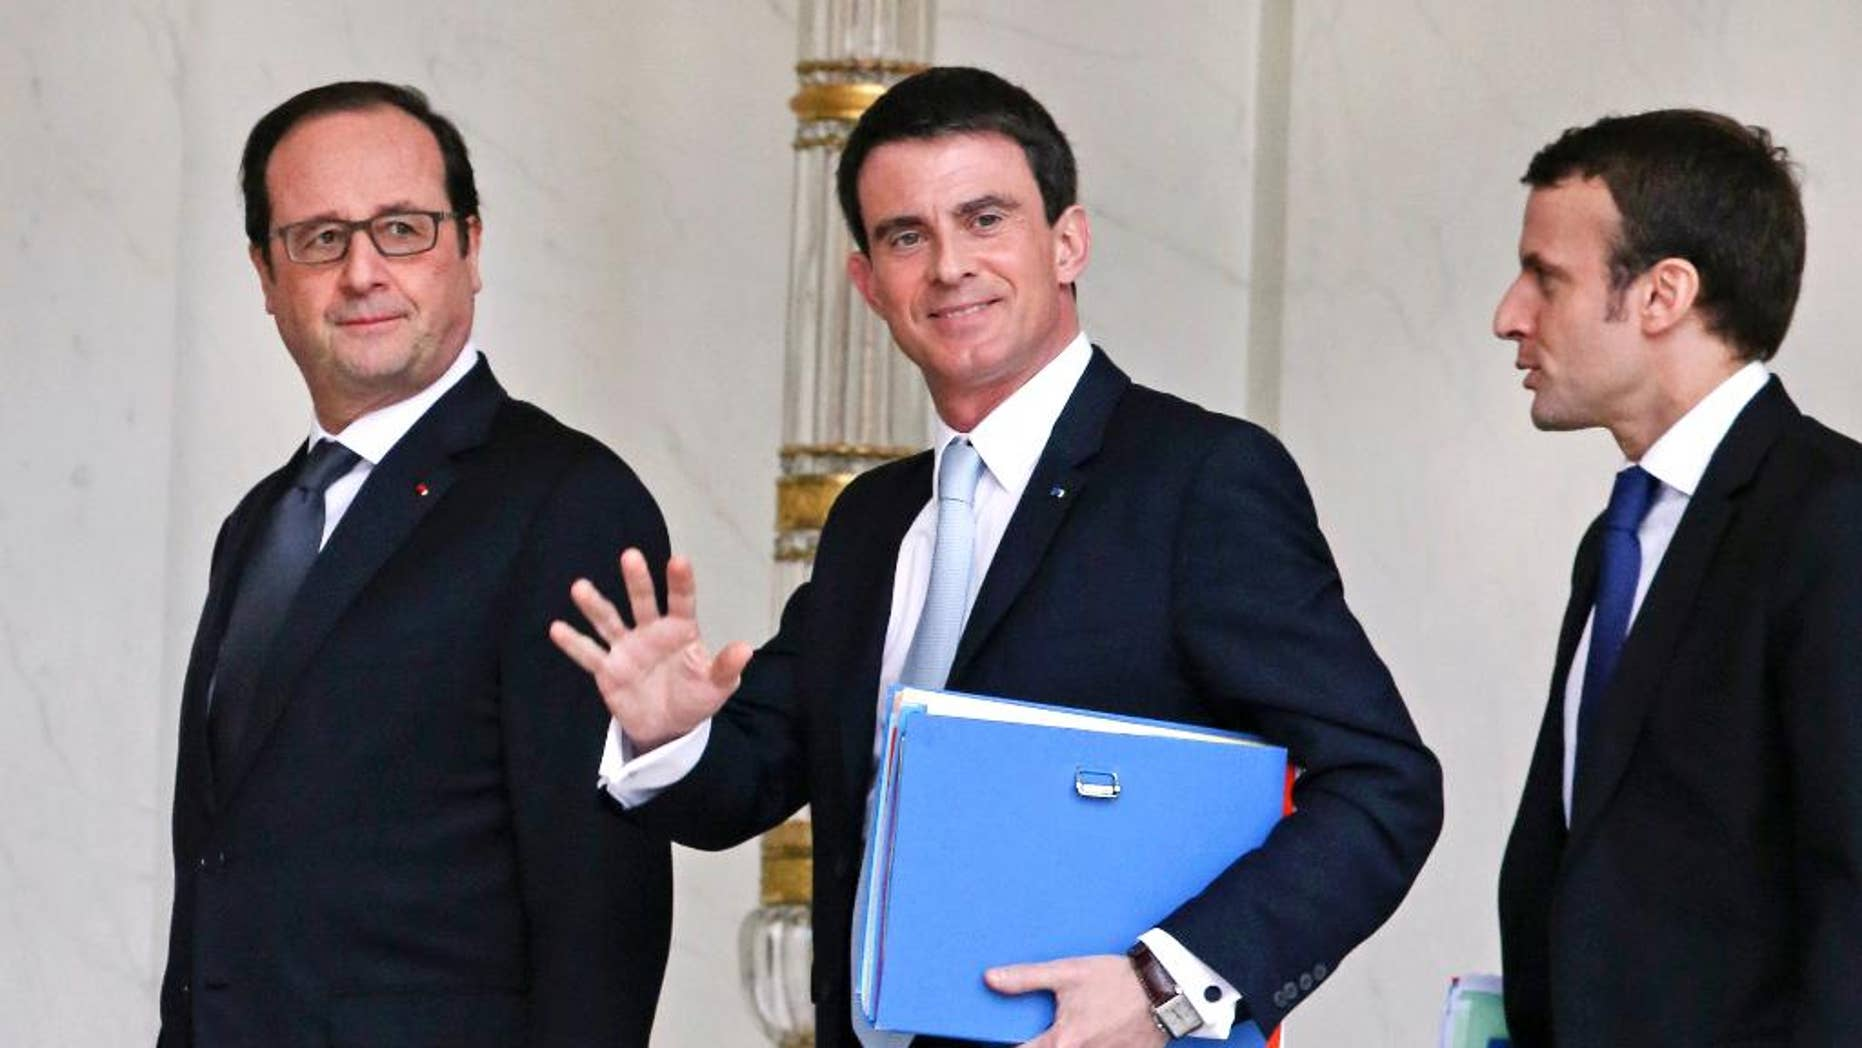 French Prime Minister Manuel Valls, center, waves to reporters as he walks in the lobby of the Elysee Palace with French President Francois Hollande, left, and Economy Minister Emmanuel Macron, right, in February 2015.